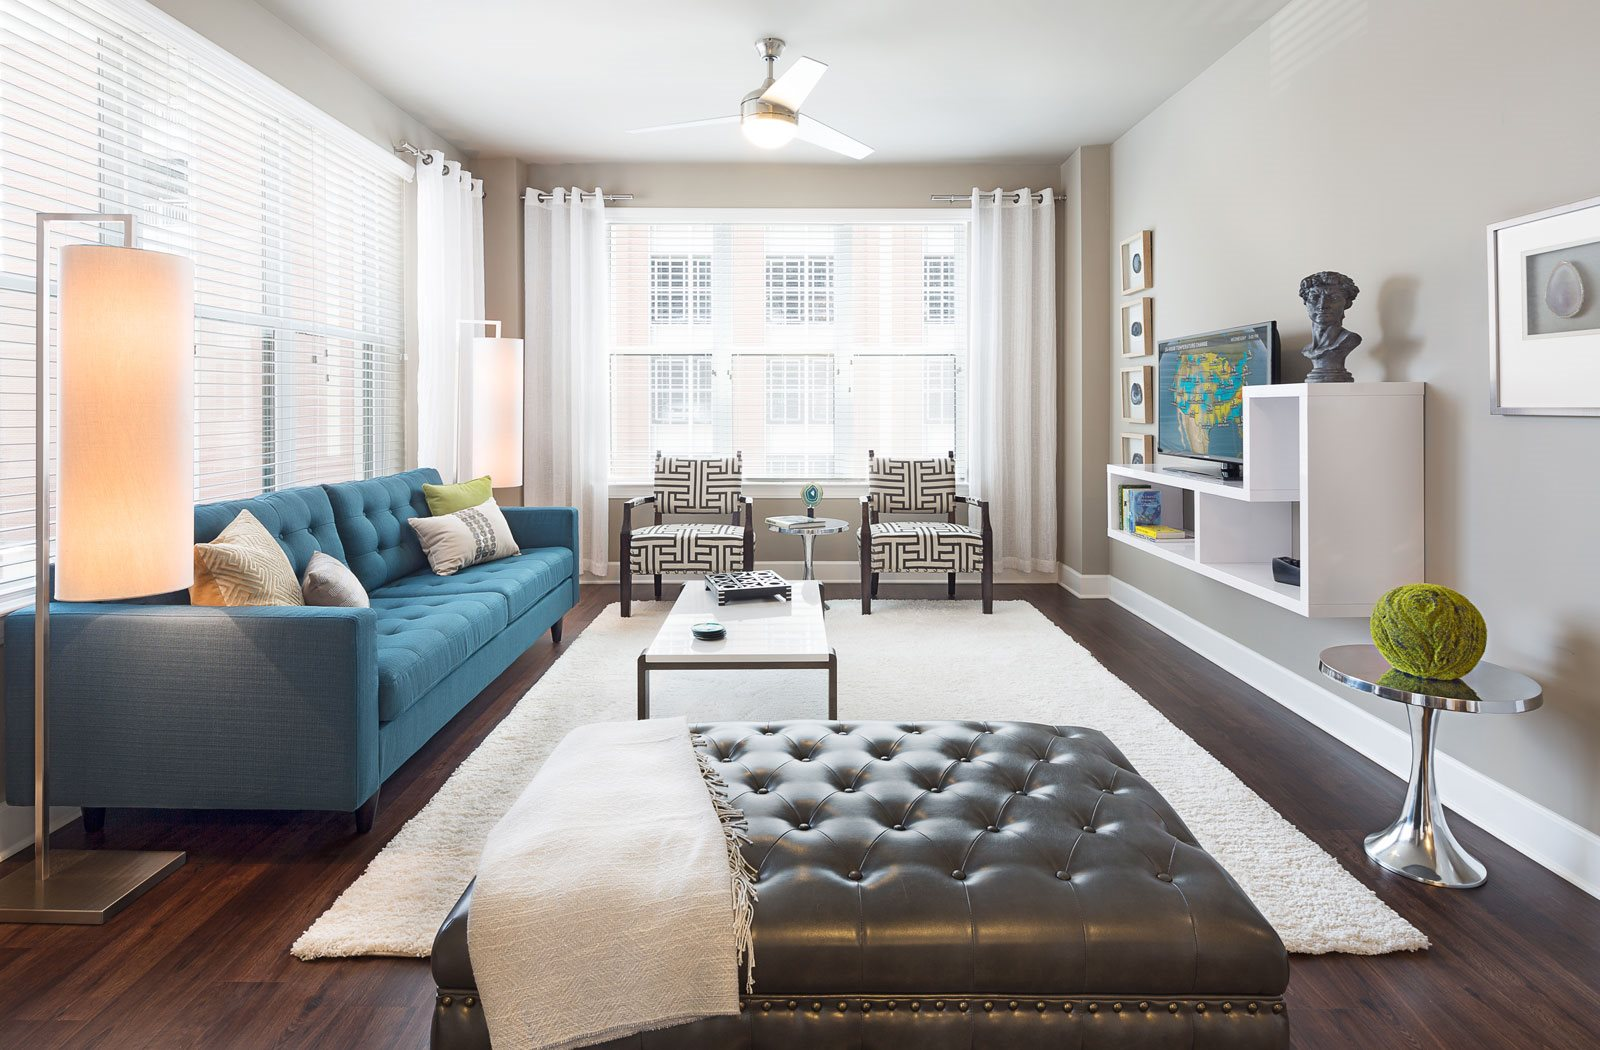 The Edison Lofts Apartments | Apartments in Raleigh, NC